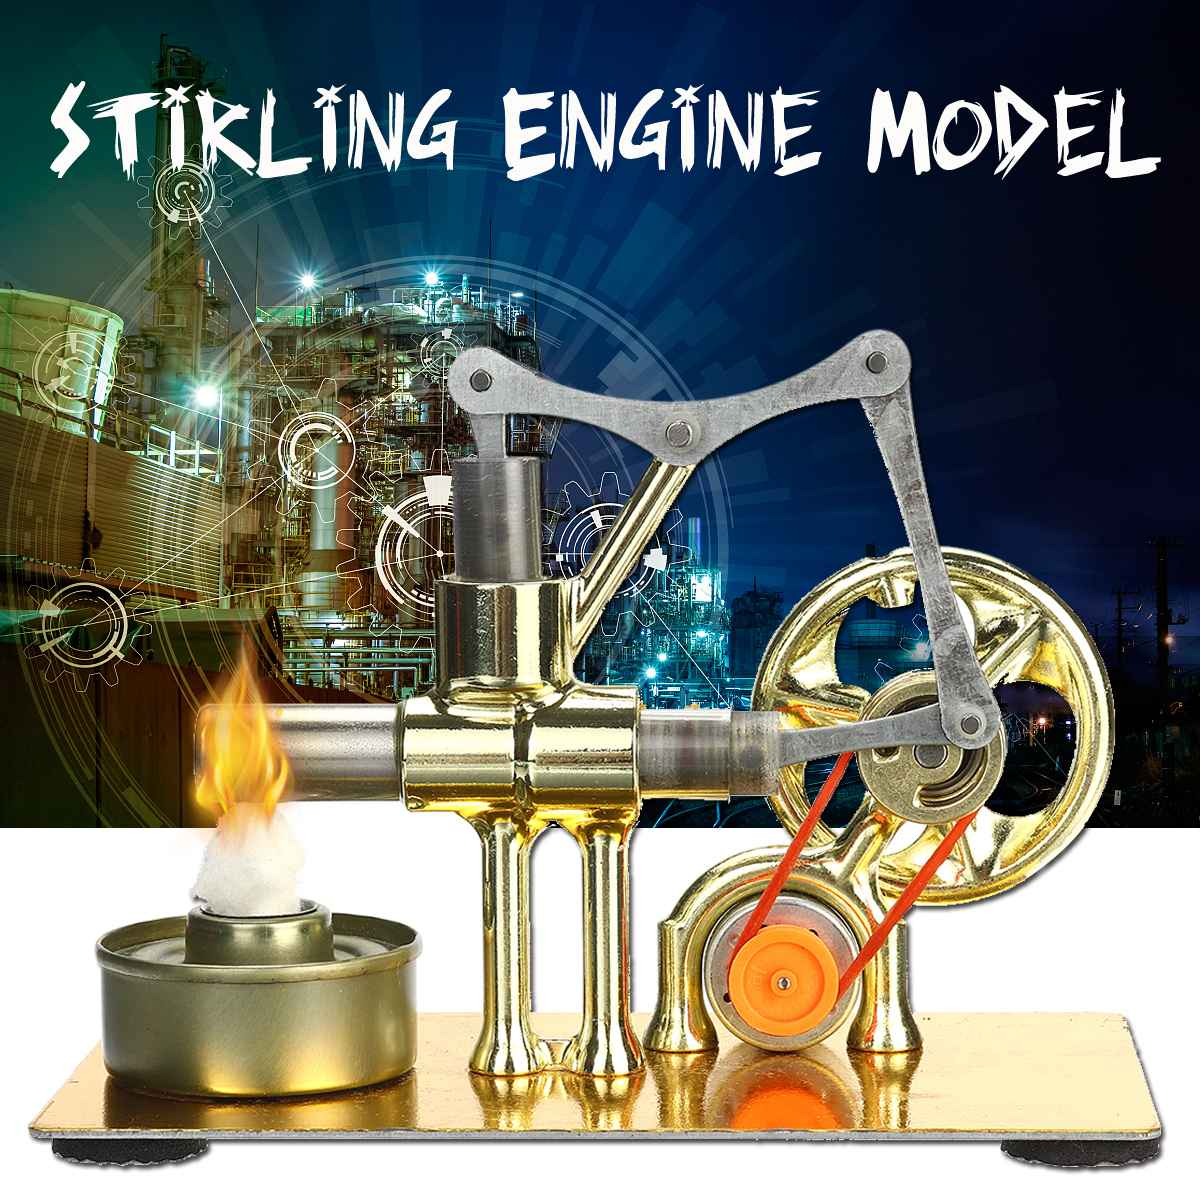 Mini Hot Air Stirling Engine Model Power Generator Motor Physics Educational Science Toy